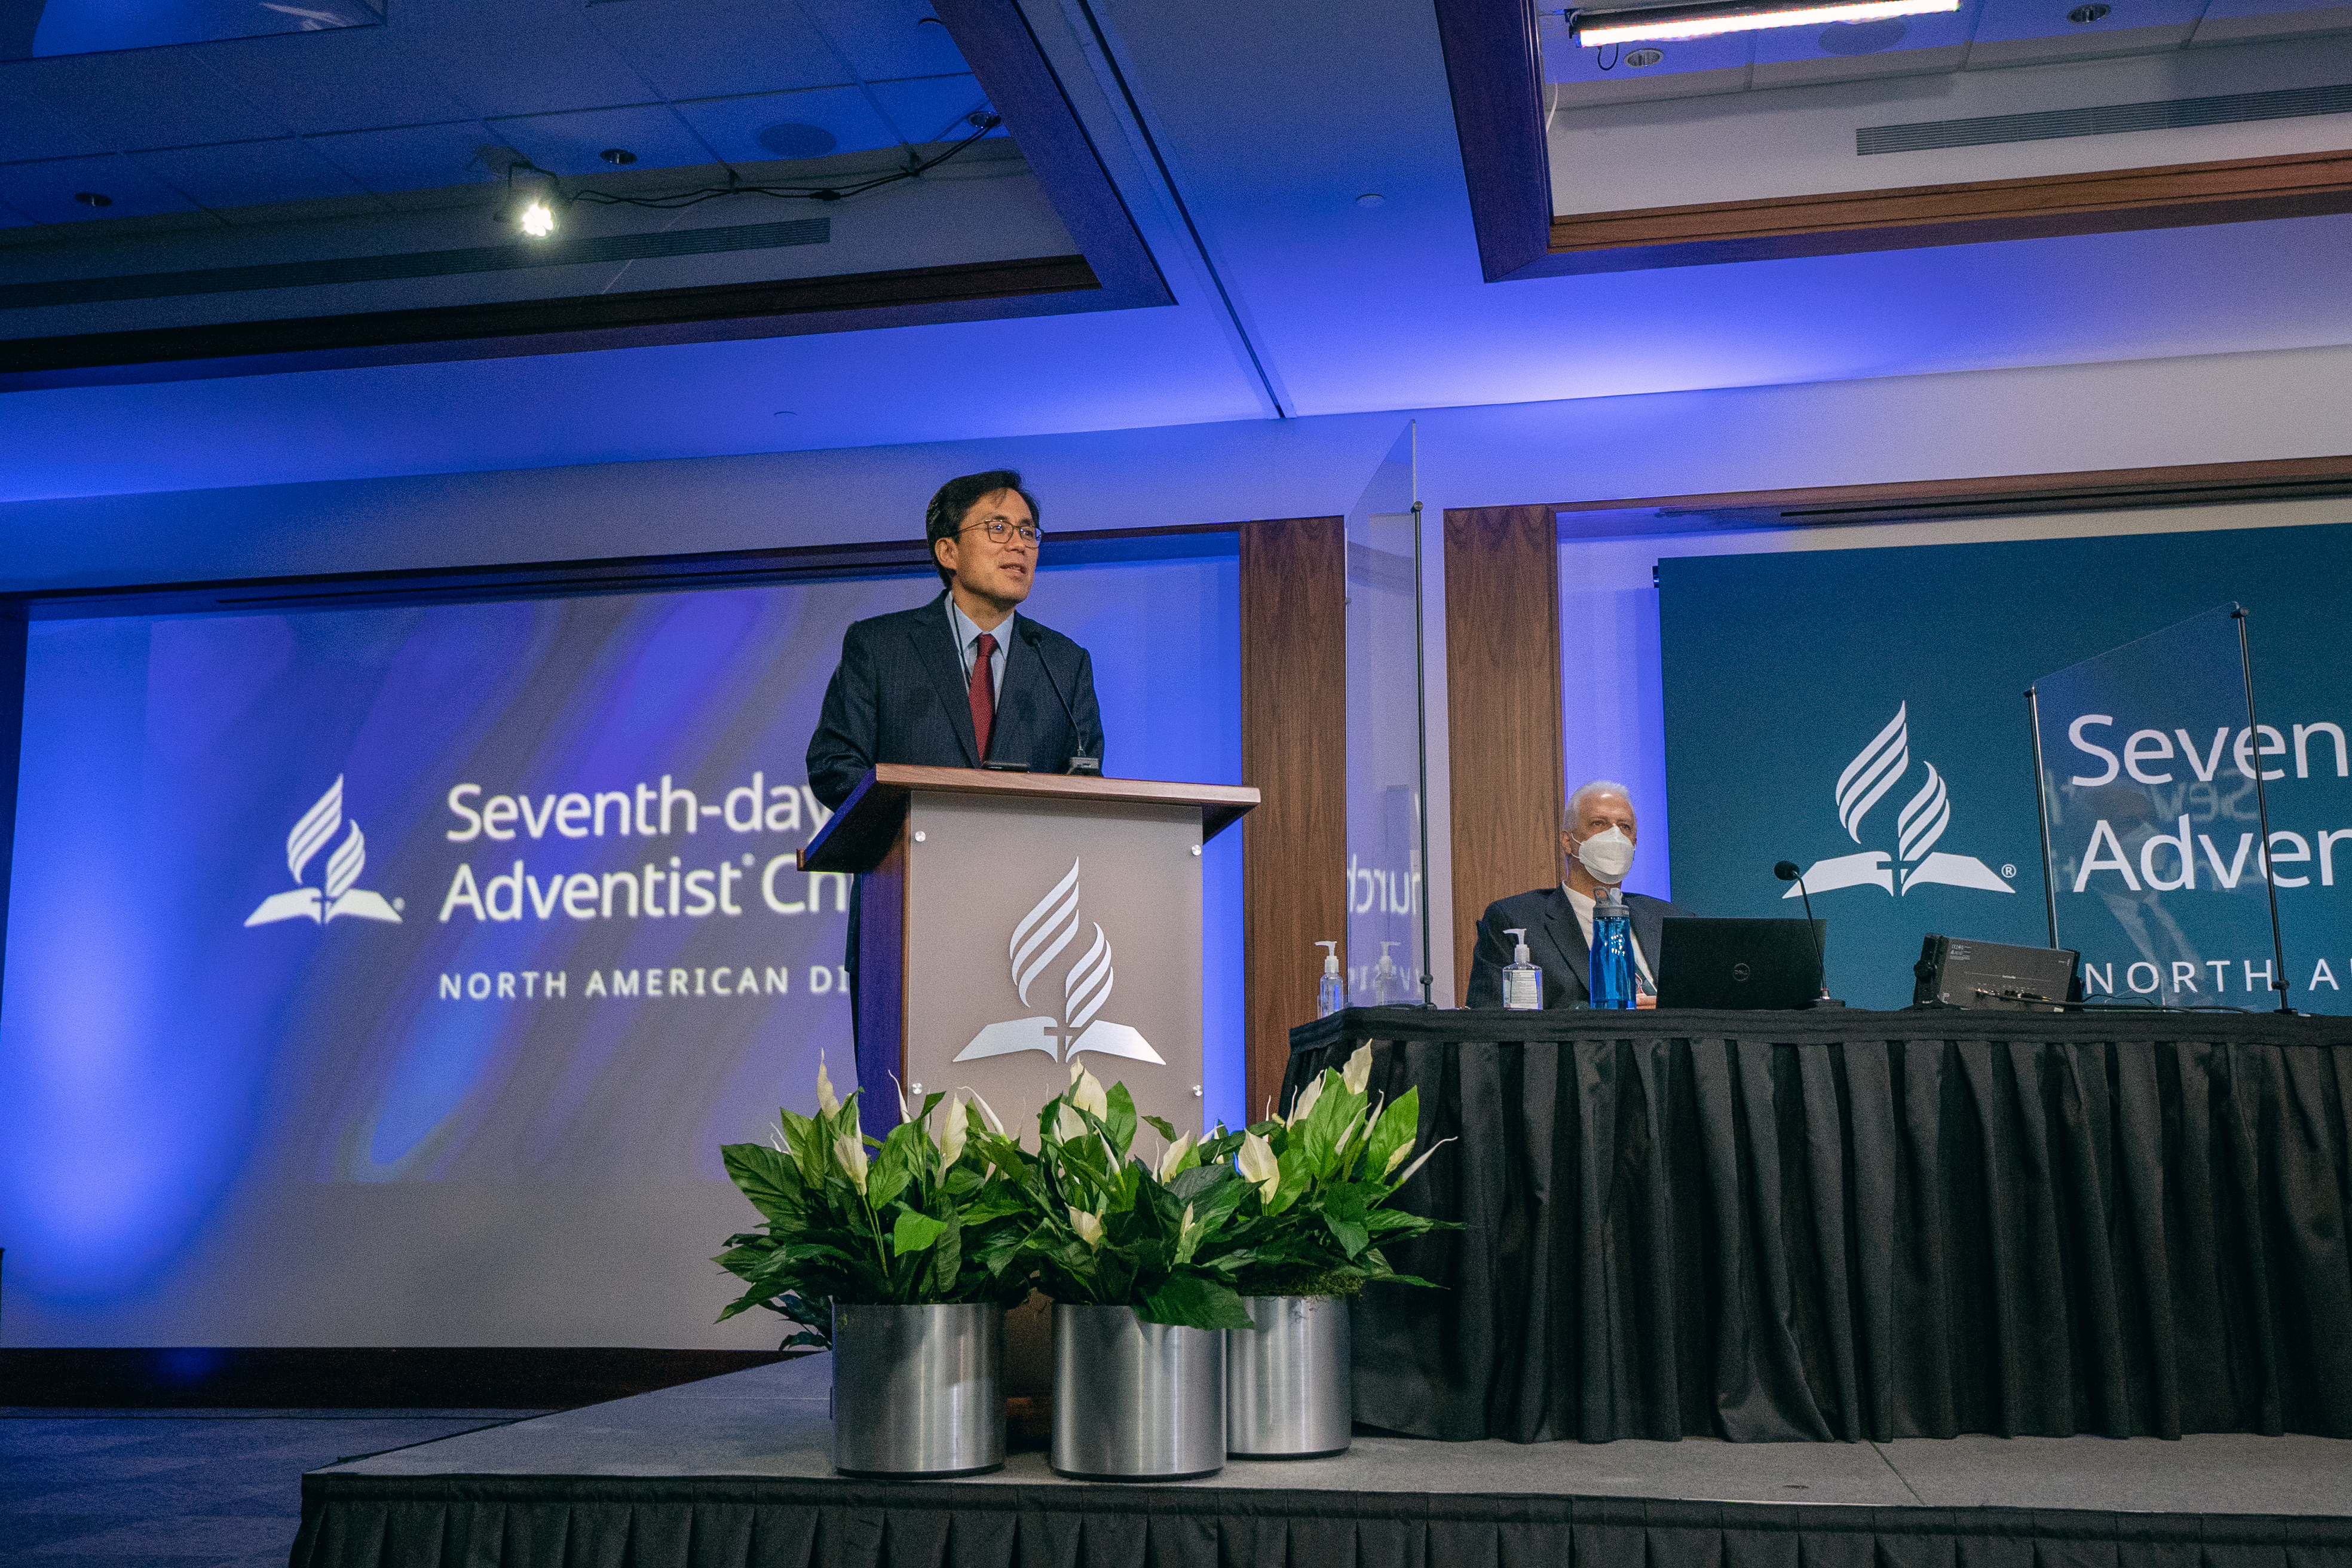 Kyoshin Ahn, NAD executive secretary, presents during the 2020 NAD Year-End Meeting. Photo: Pieter Damsteegt